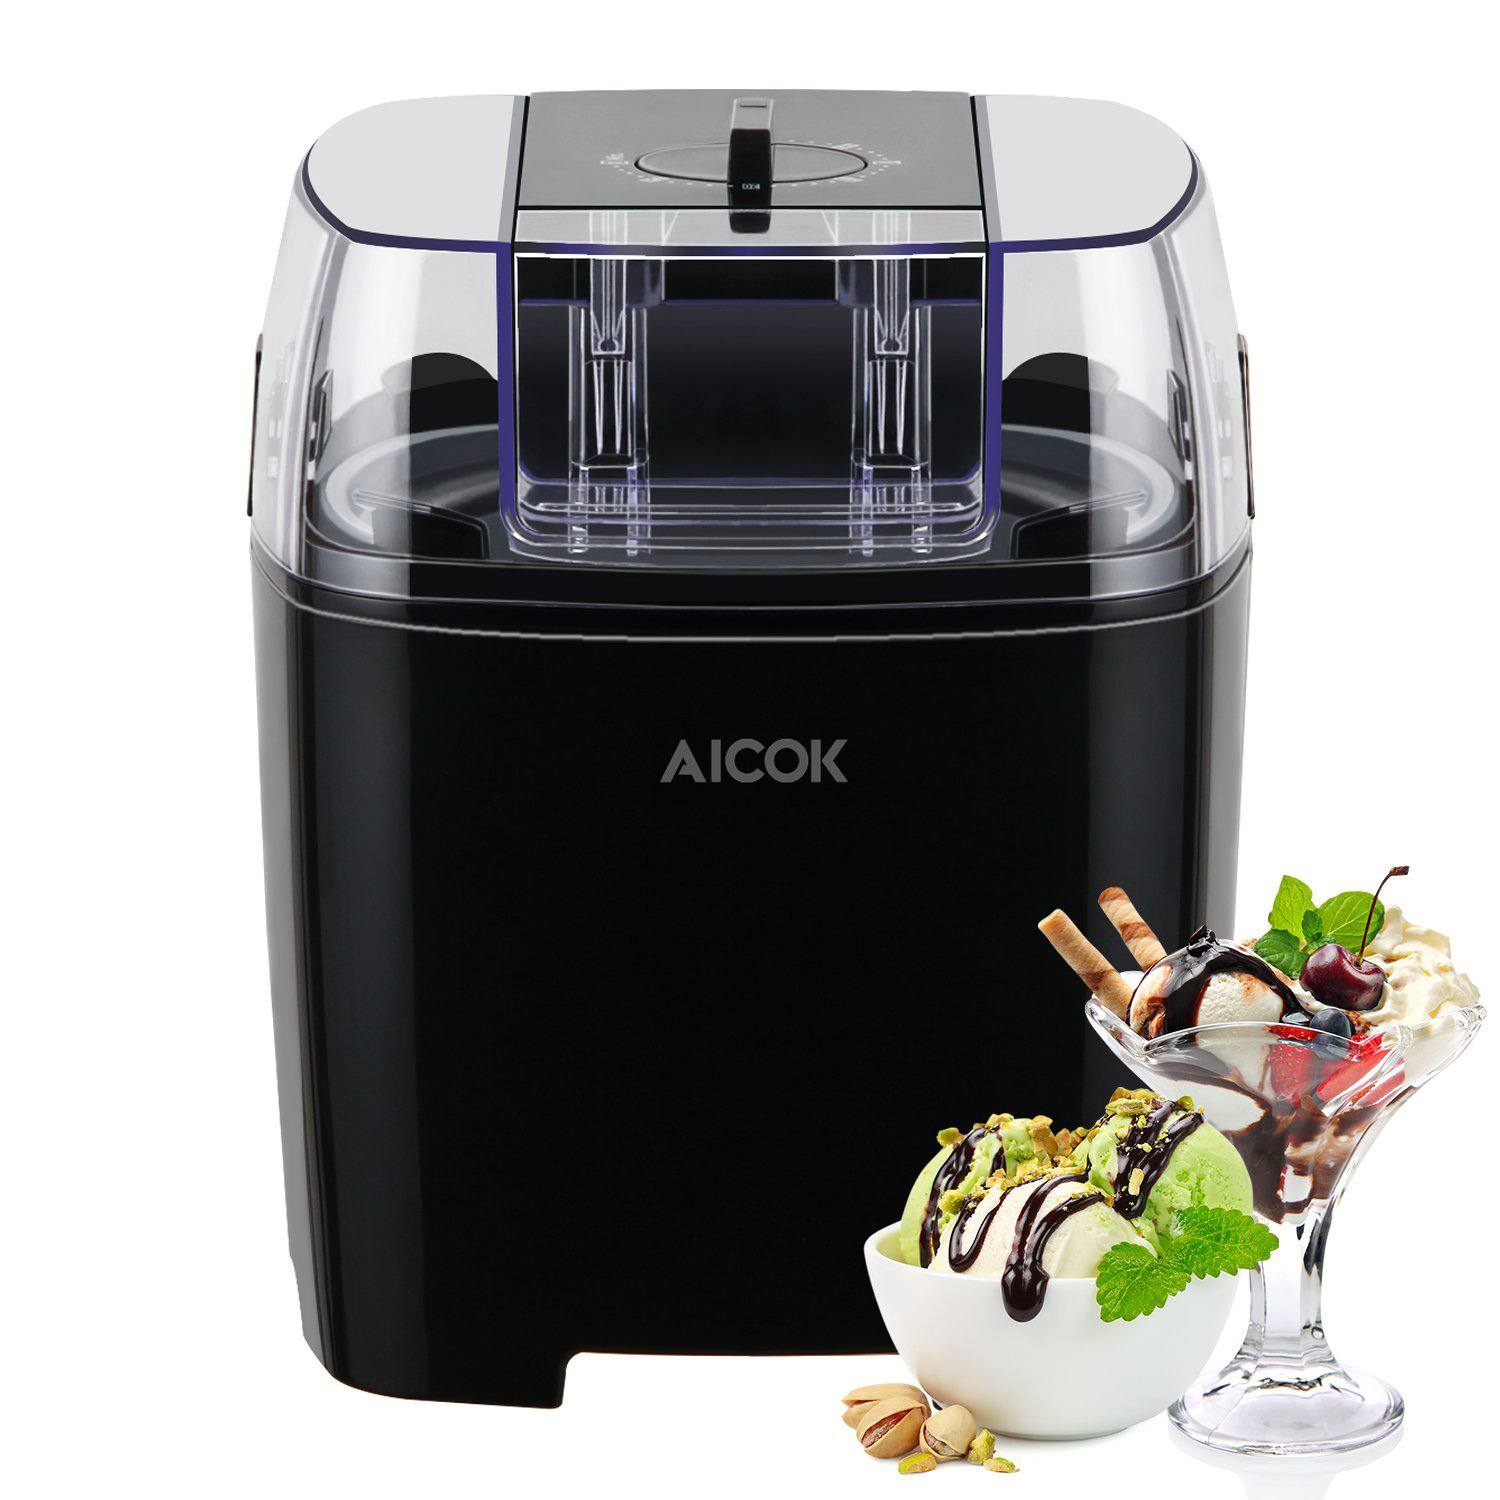 Aicok Home Ice Cream Maker Machine Plus Frozen Yogurt and Sorbet